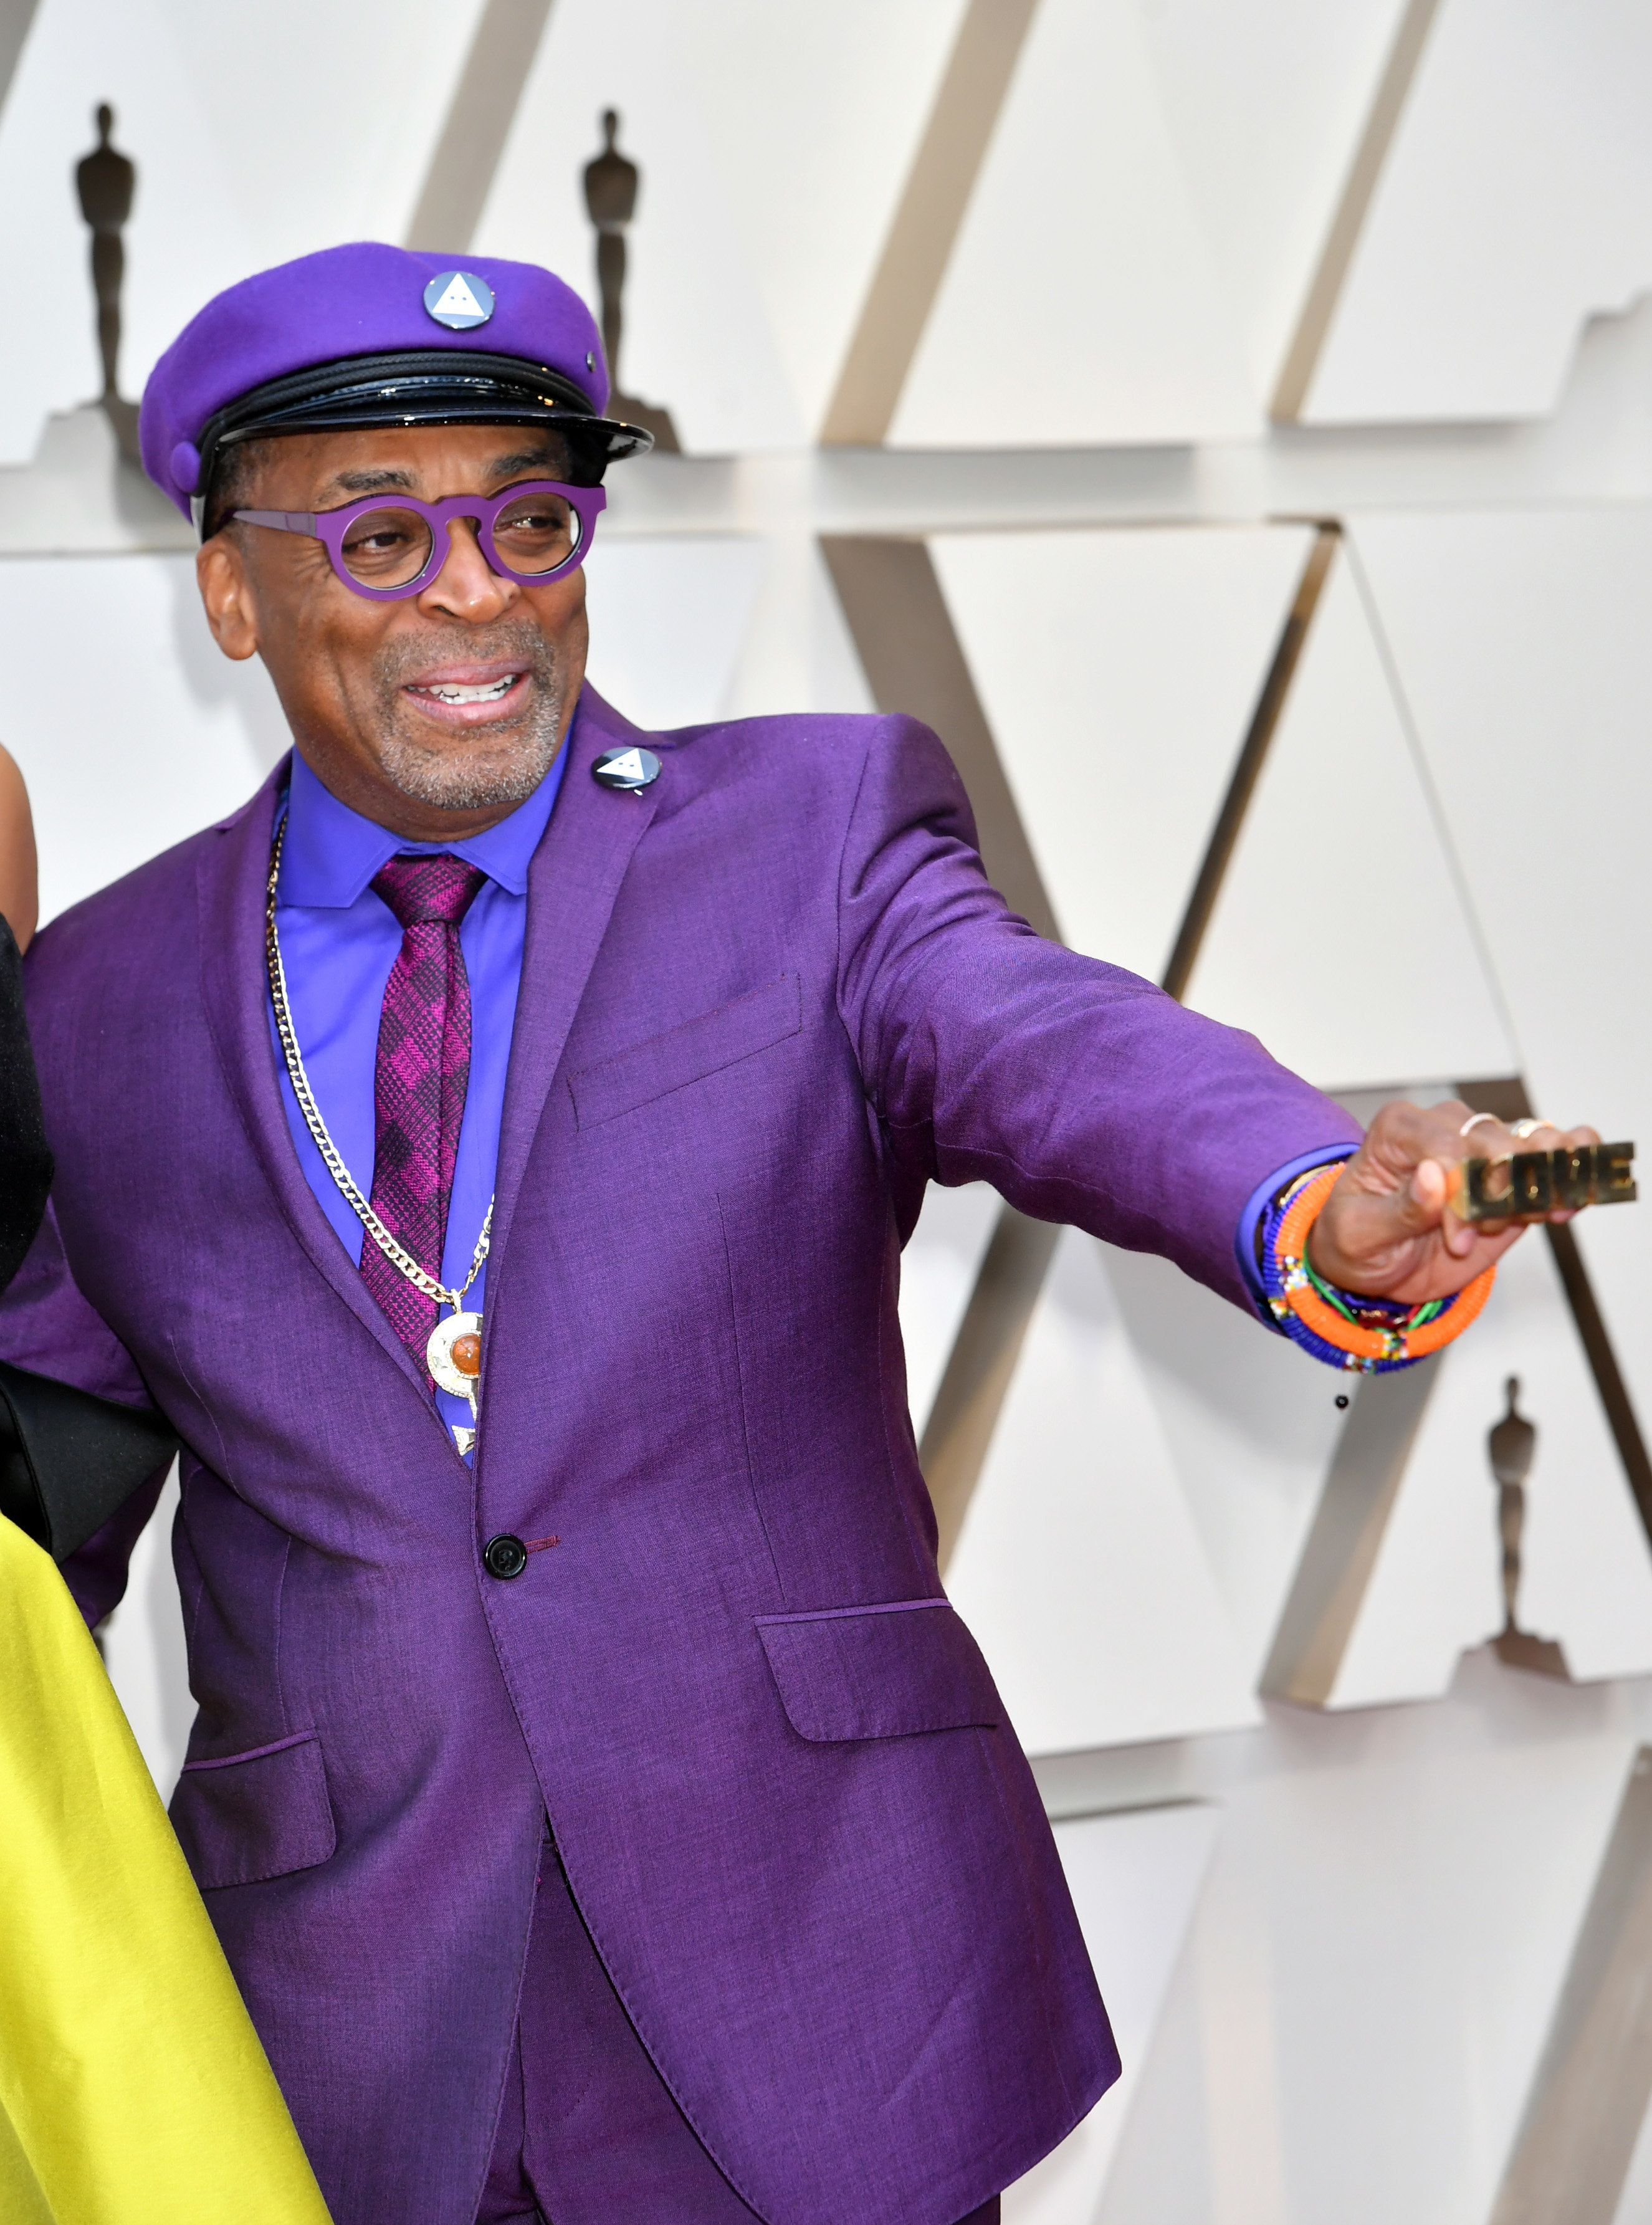 HOLLYWOOD, CA - FEBRUARY 24:  Director Spike Lee attends the 91st Annual Academy Awards at Hollywood and Highland on February 24, 2019 in Hollywood, California.  (Photo by Jeff Kravitz/FilmMagic)